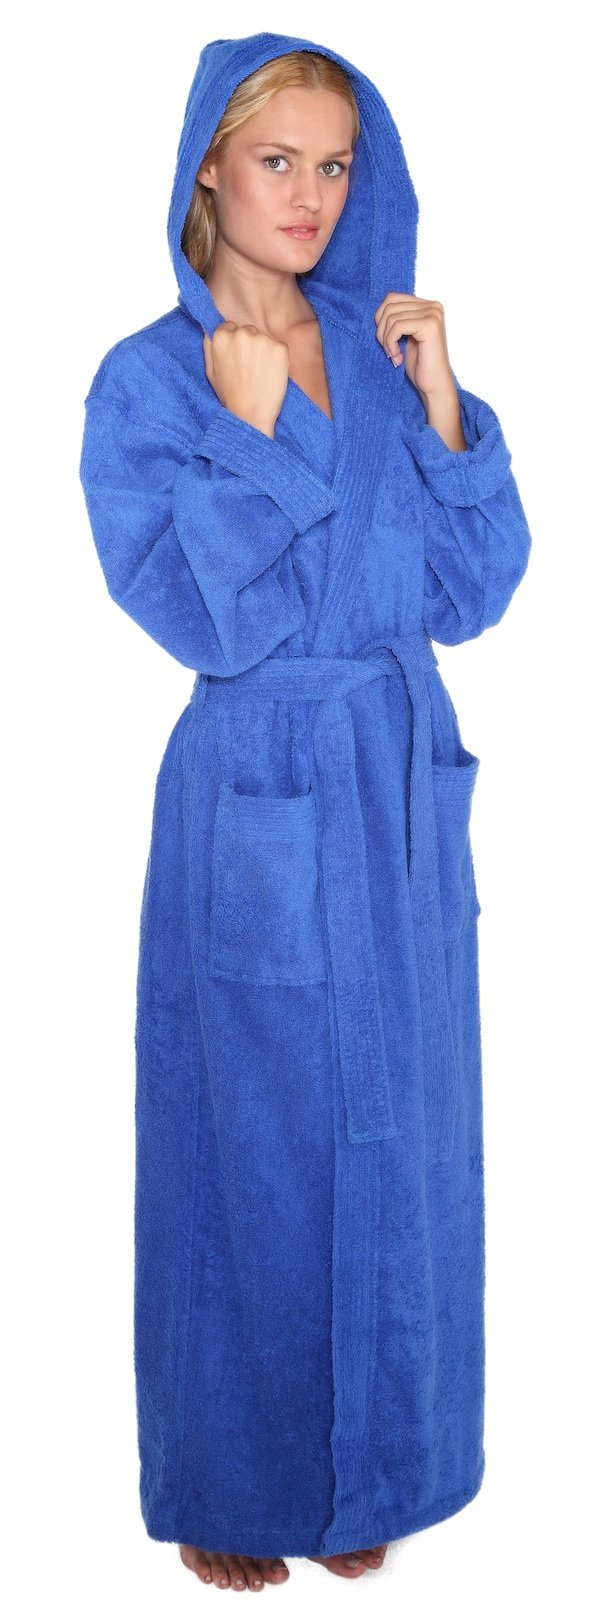 Arus Women's Pacific Style Full Length Hooded Turkish Cotton Bathrobe S/M Royal Blue